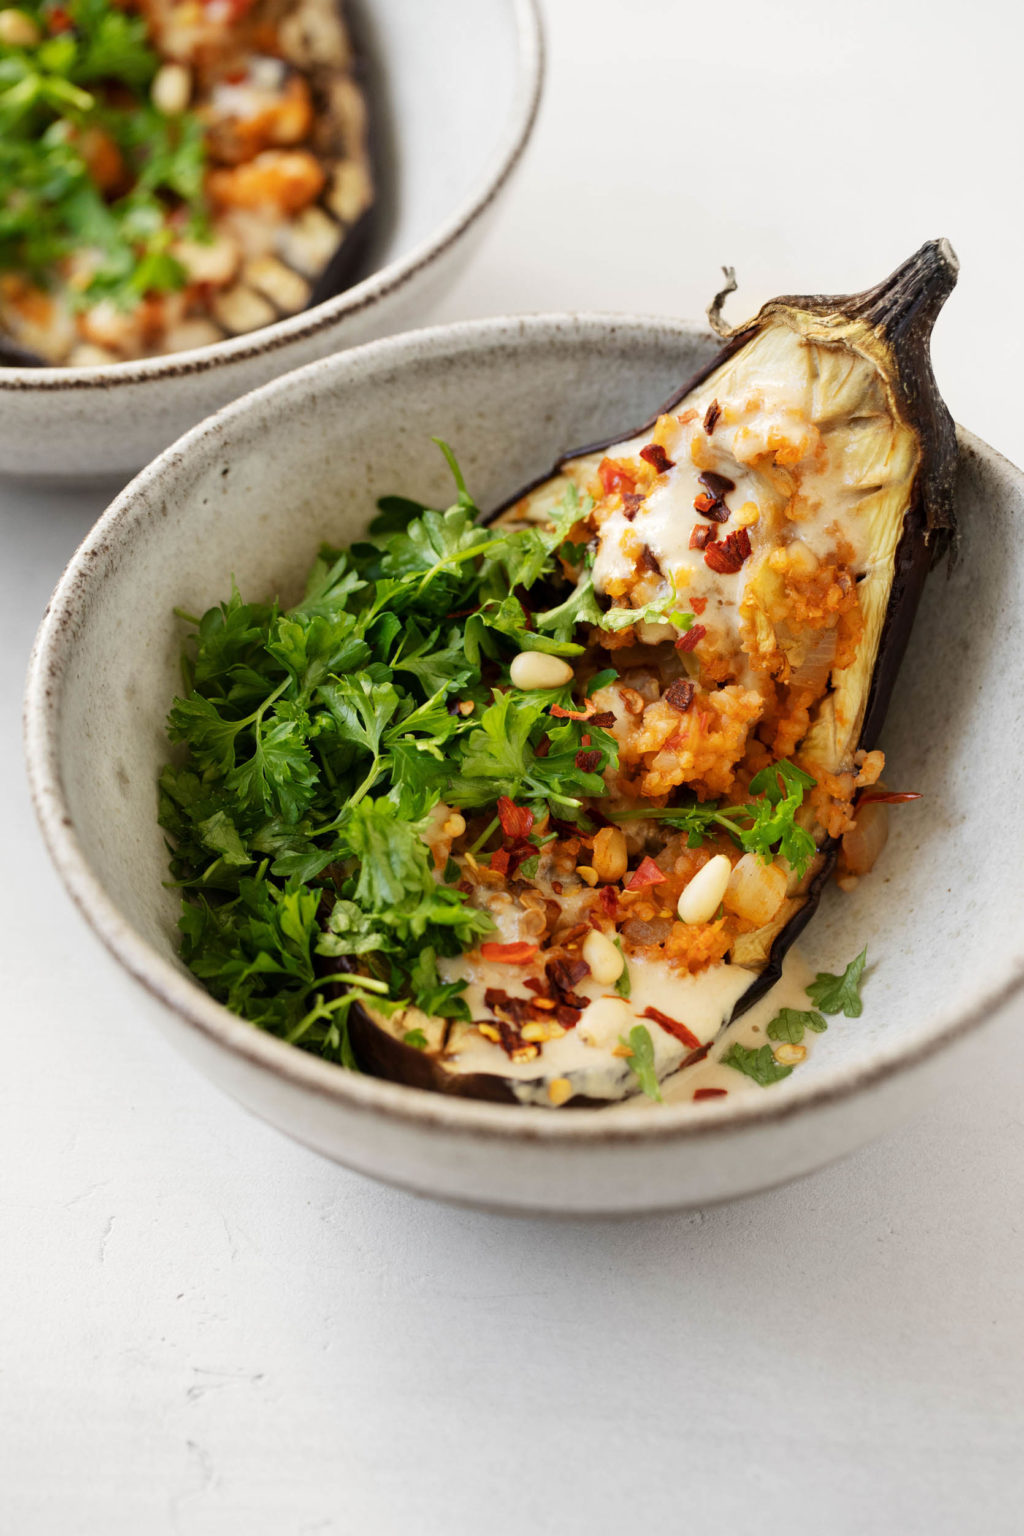 A sumptuous, plant-based stuffed eggplant with bulgur, currants, and pine nuts